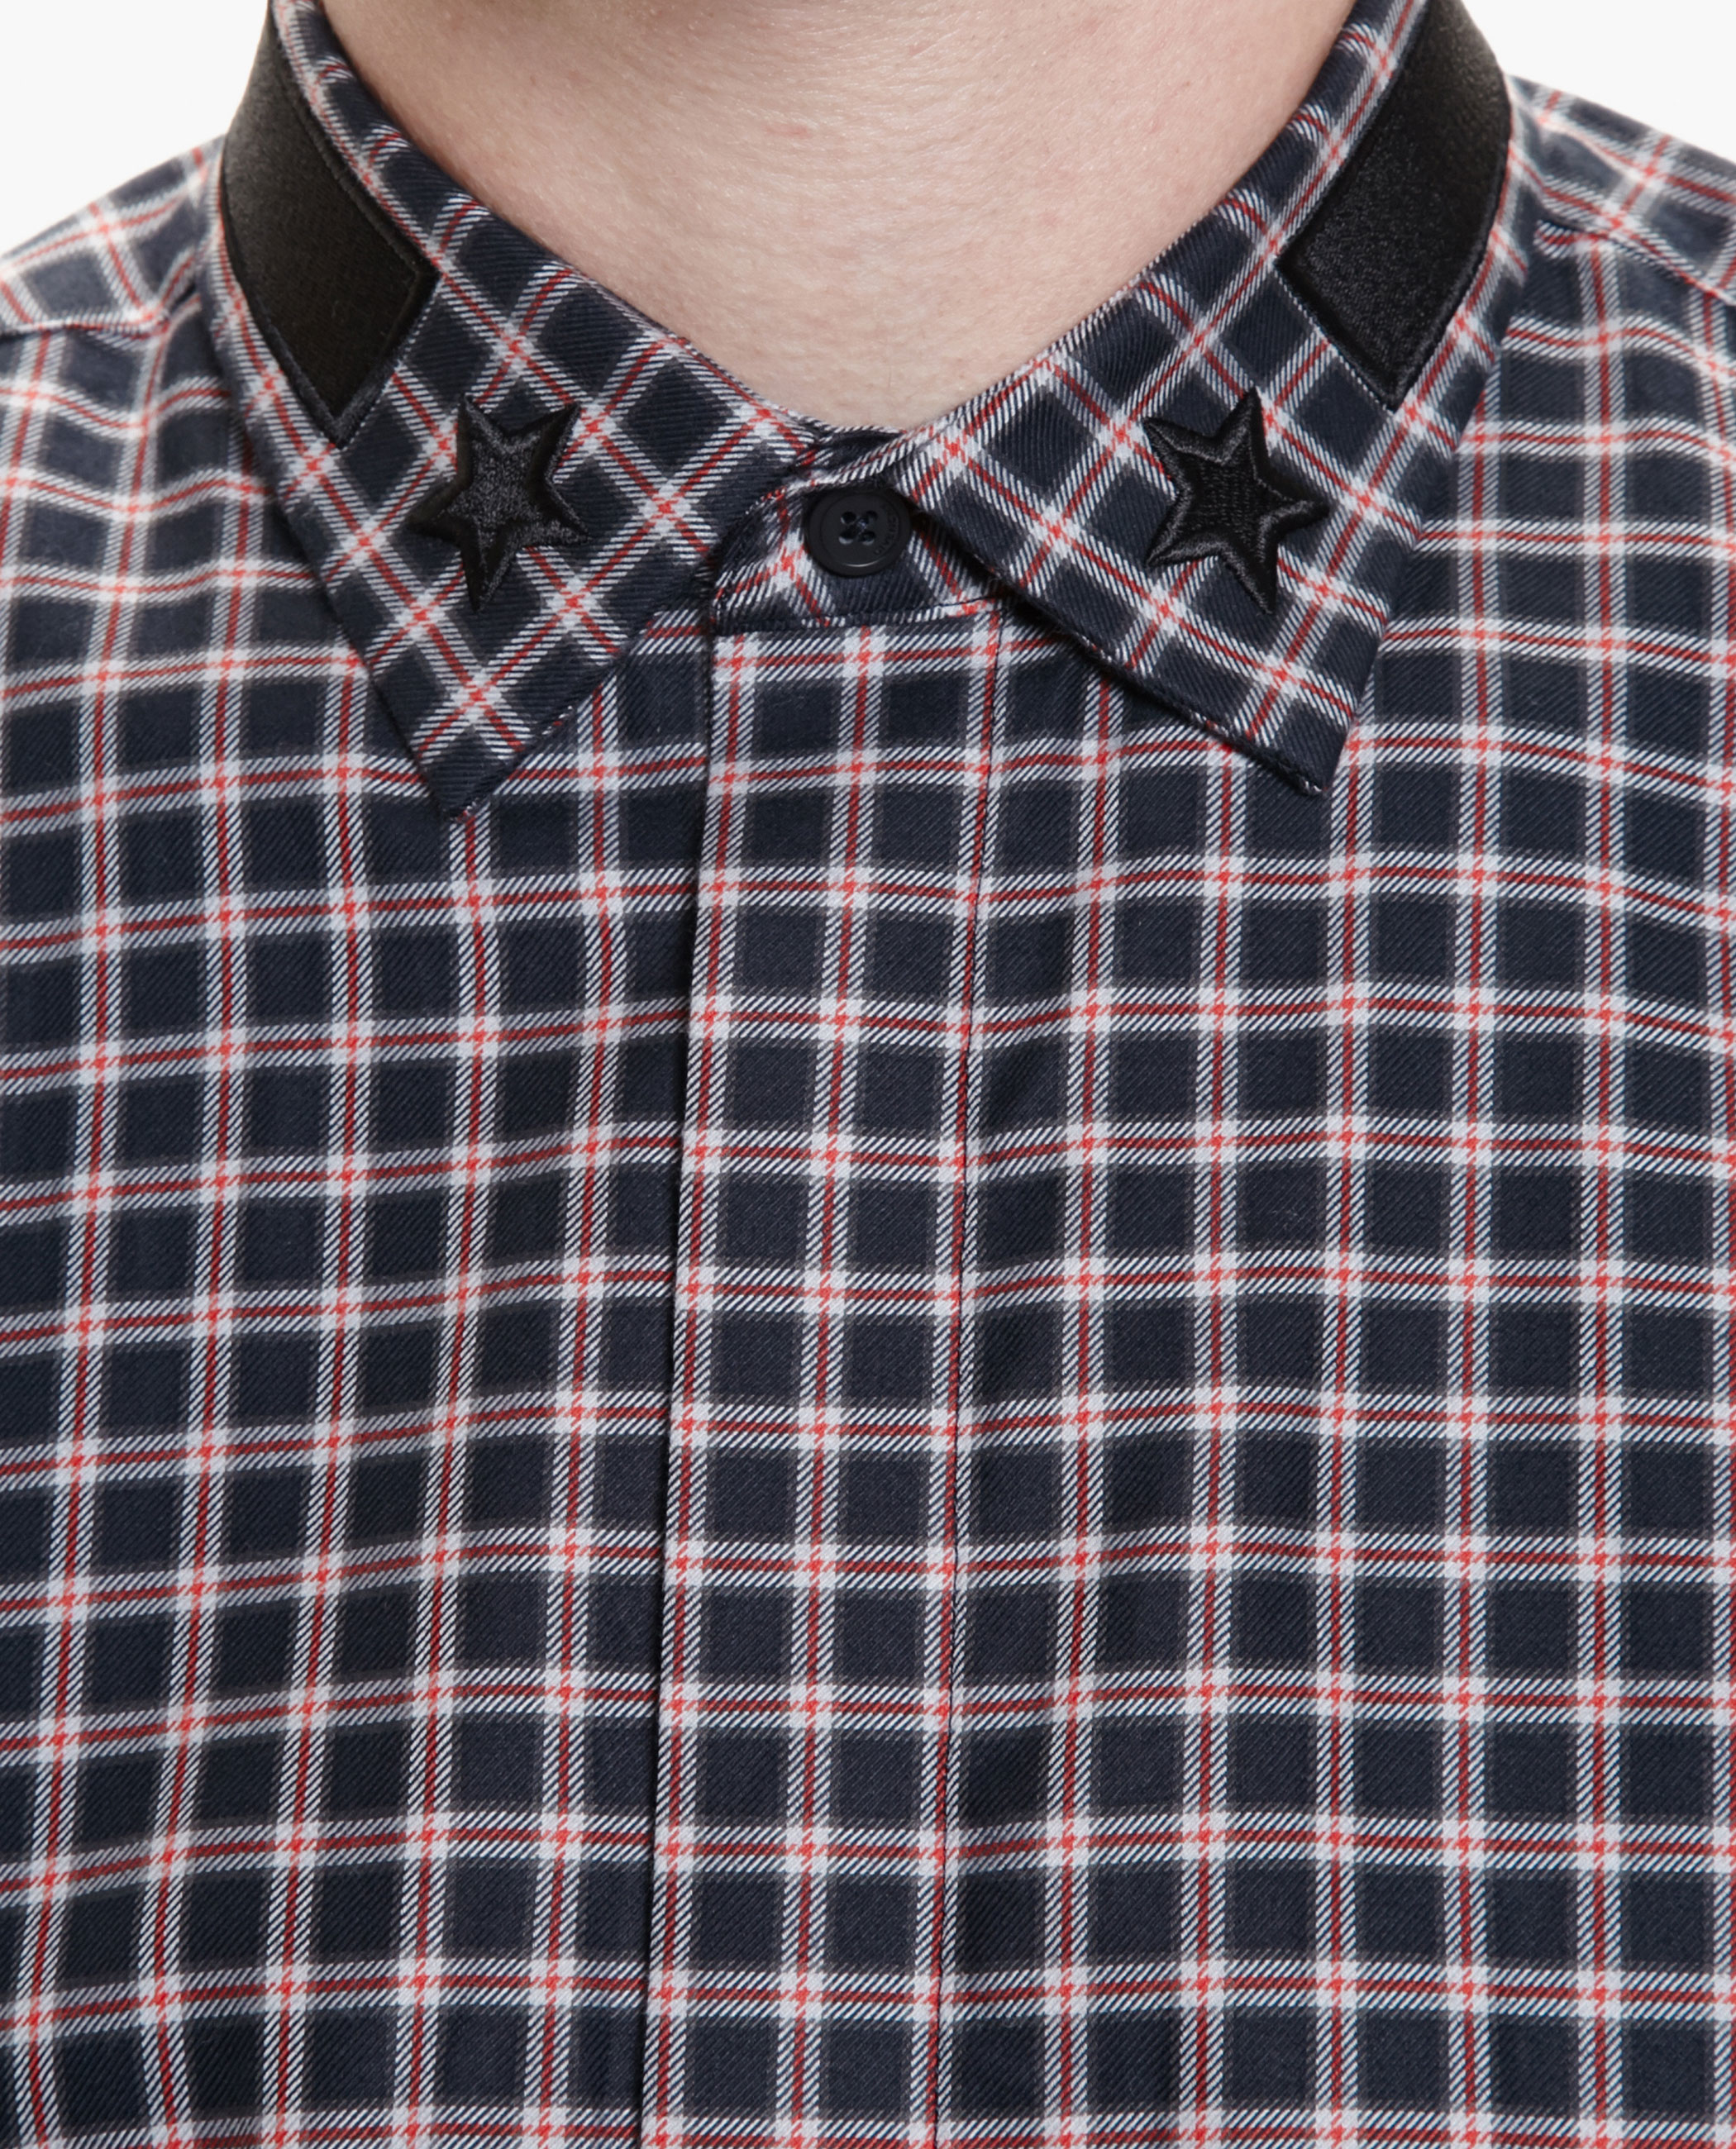 693771fdff41 Lyst - Givenchy Cuban Fit Checked Cotton Shirt in Black for Men